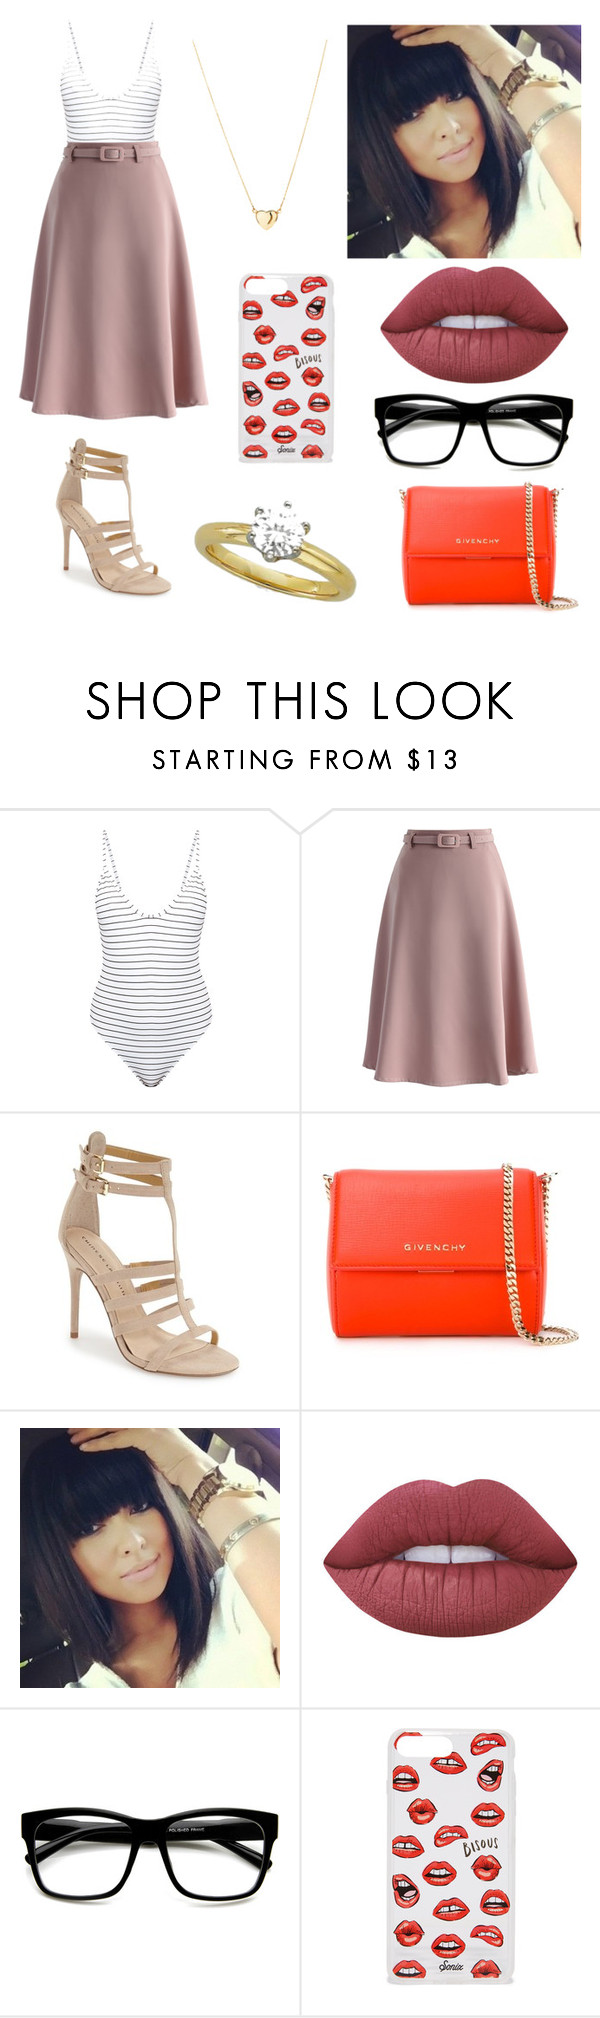 """""""Sem título #1072"""" by mahceinha ❤ liked on Polyvore featuring Bower, Chicwish, Chinese Laundry, Givenchy, Lime Crime, ZeroUV and Sonix"""